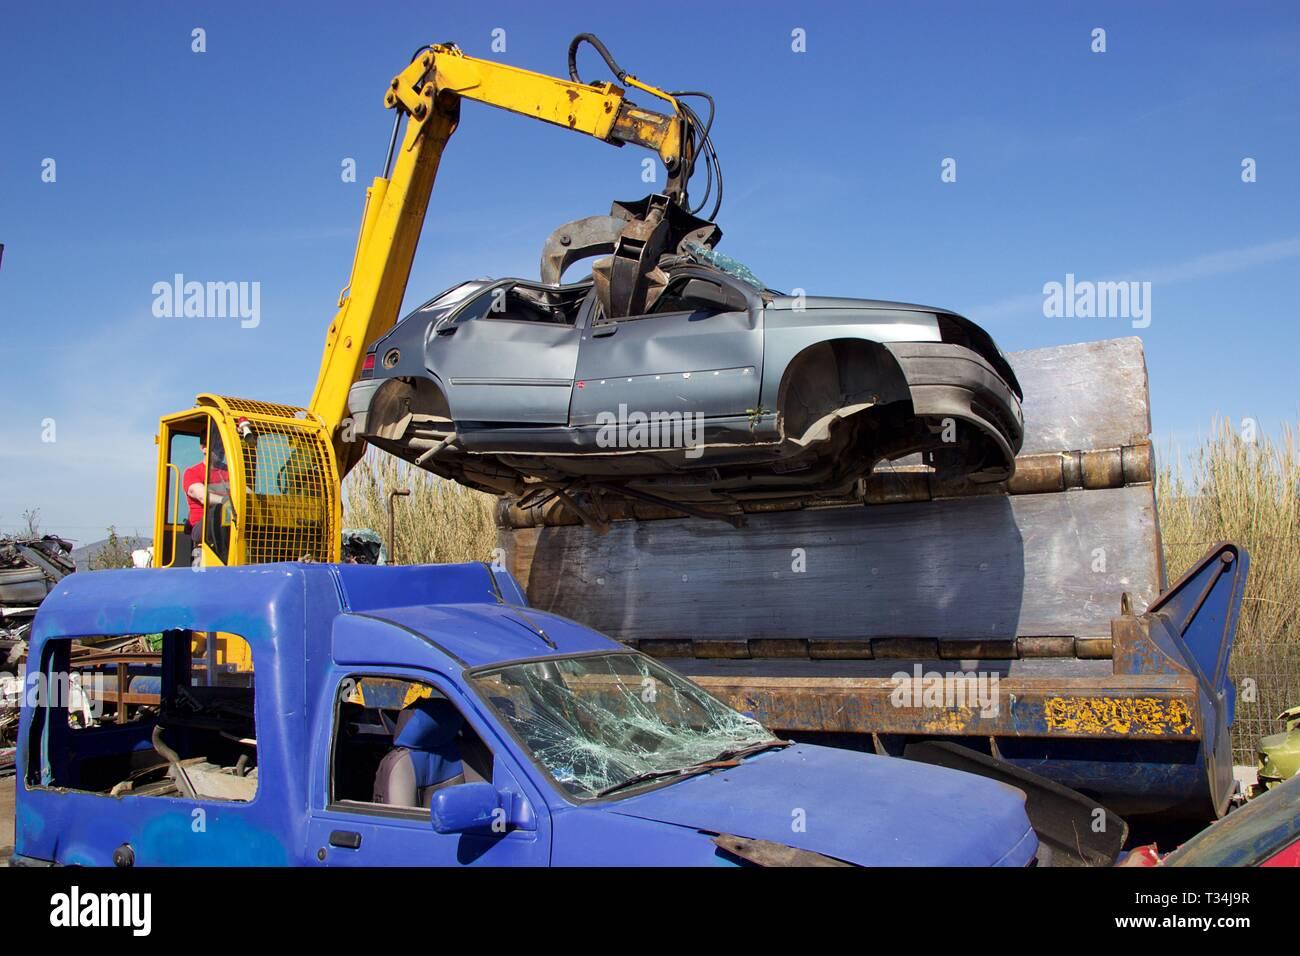 Crane with claw move an old crushed car from junkyard at car press crusher for recycling - Stock Image